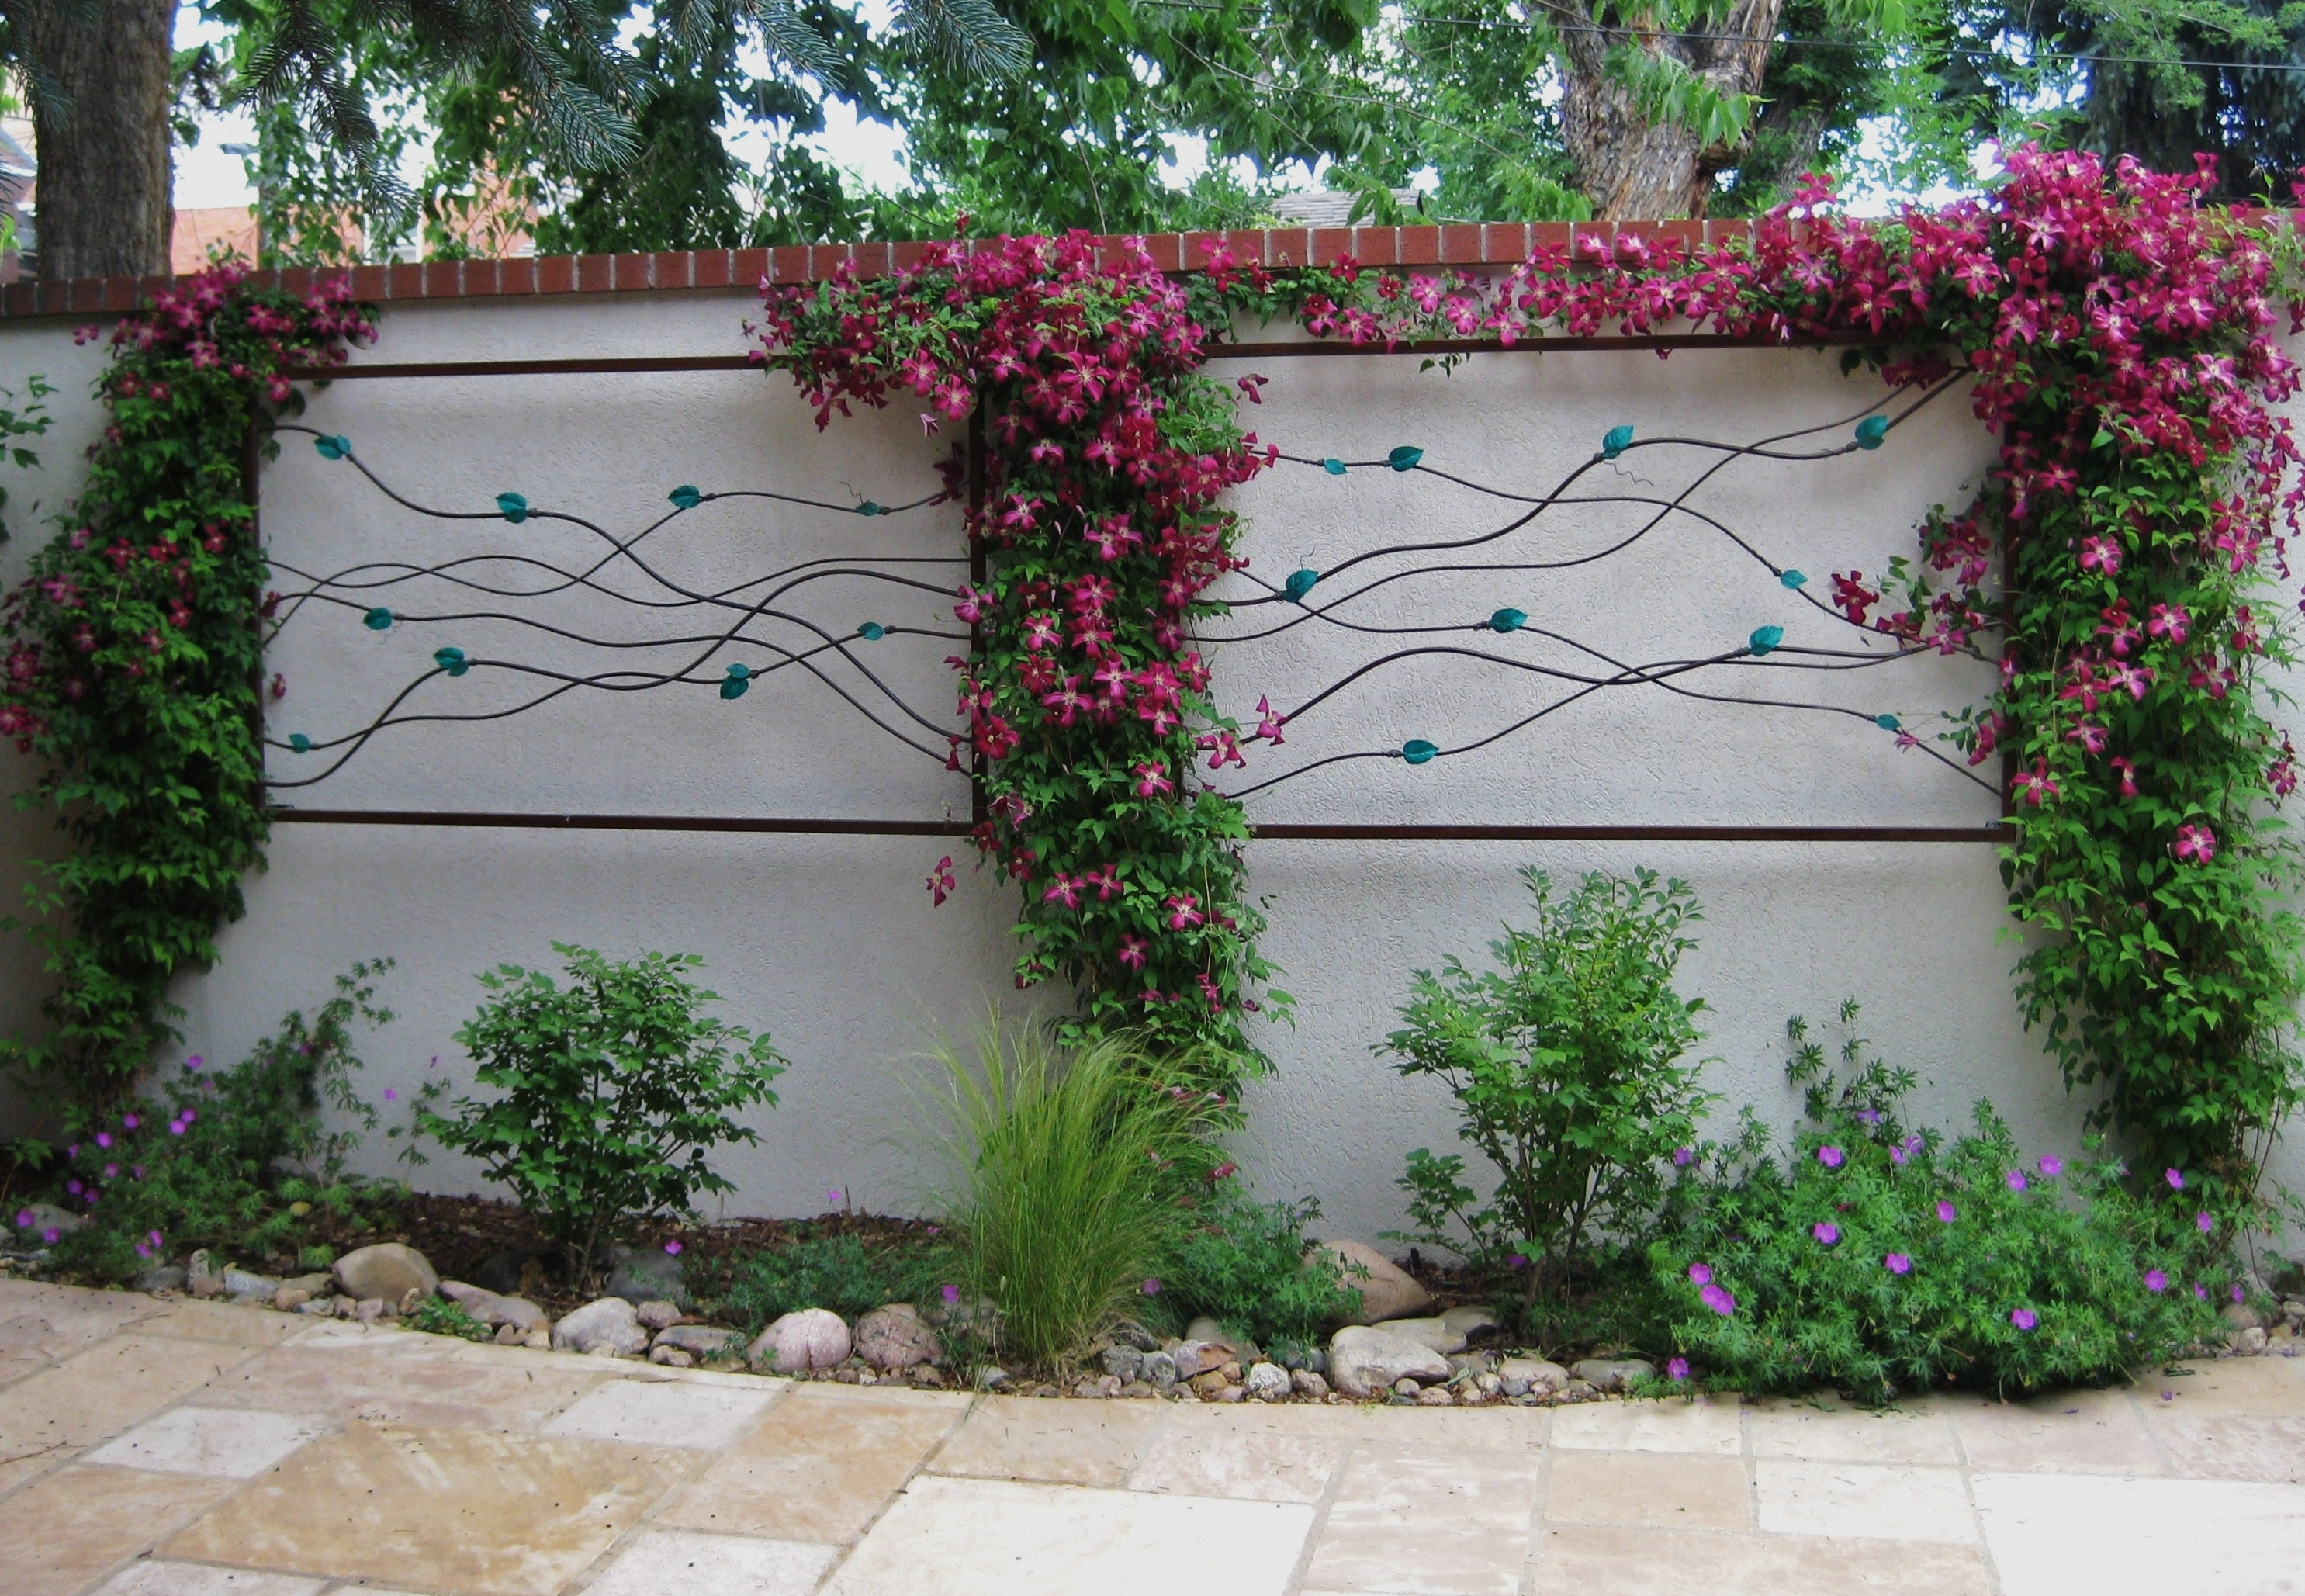 Best Of Wall Art Ideas For Garden | Wall Decorations With Regard To Current Outdoor Wall Art Decors (Gallery 9 of 20)